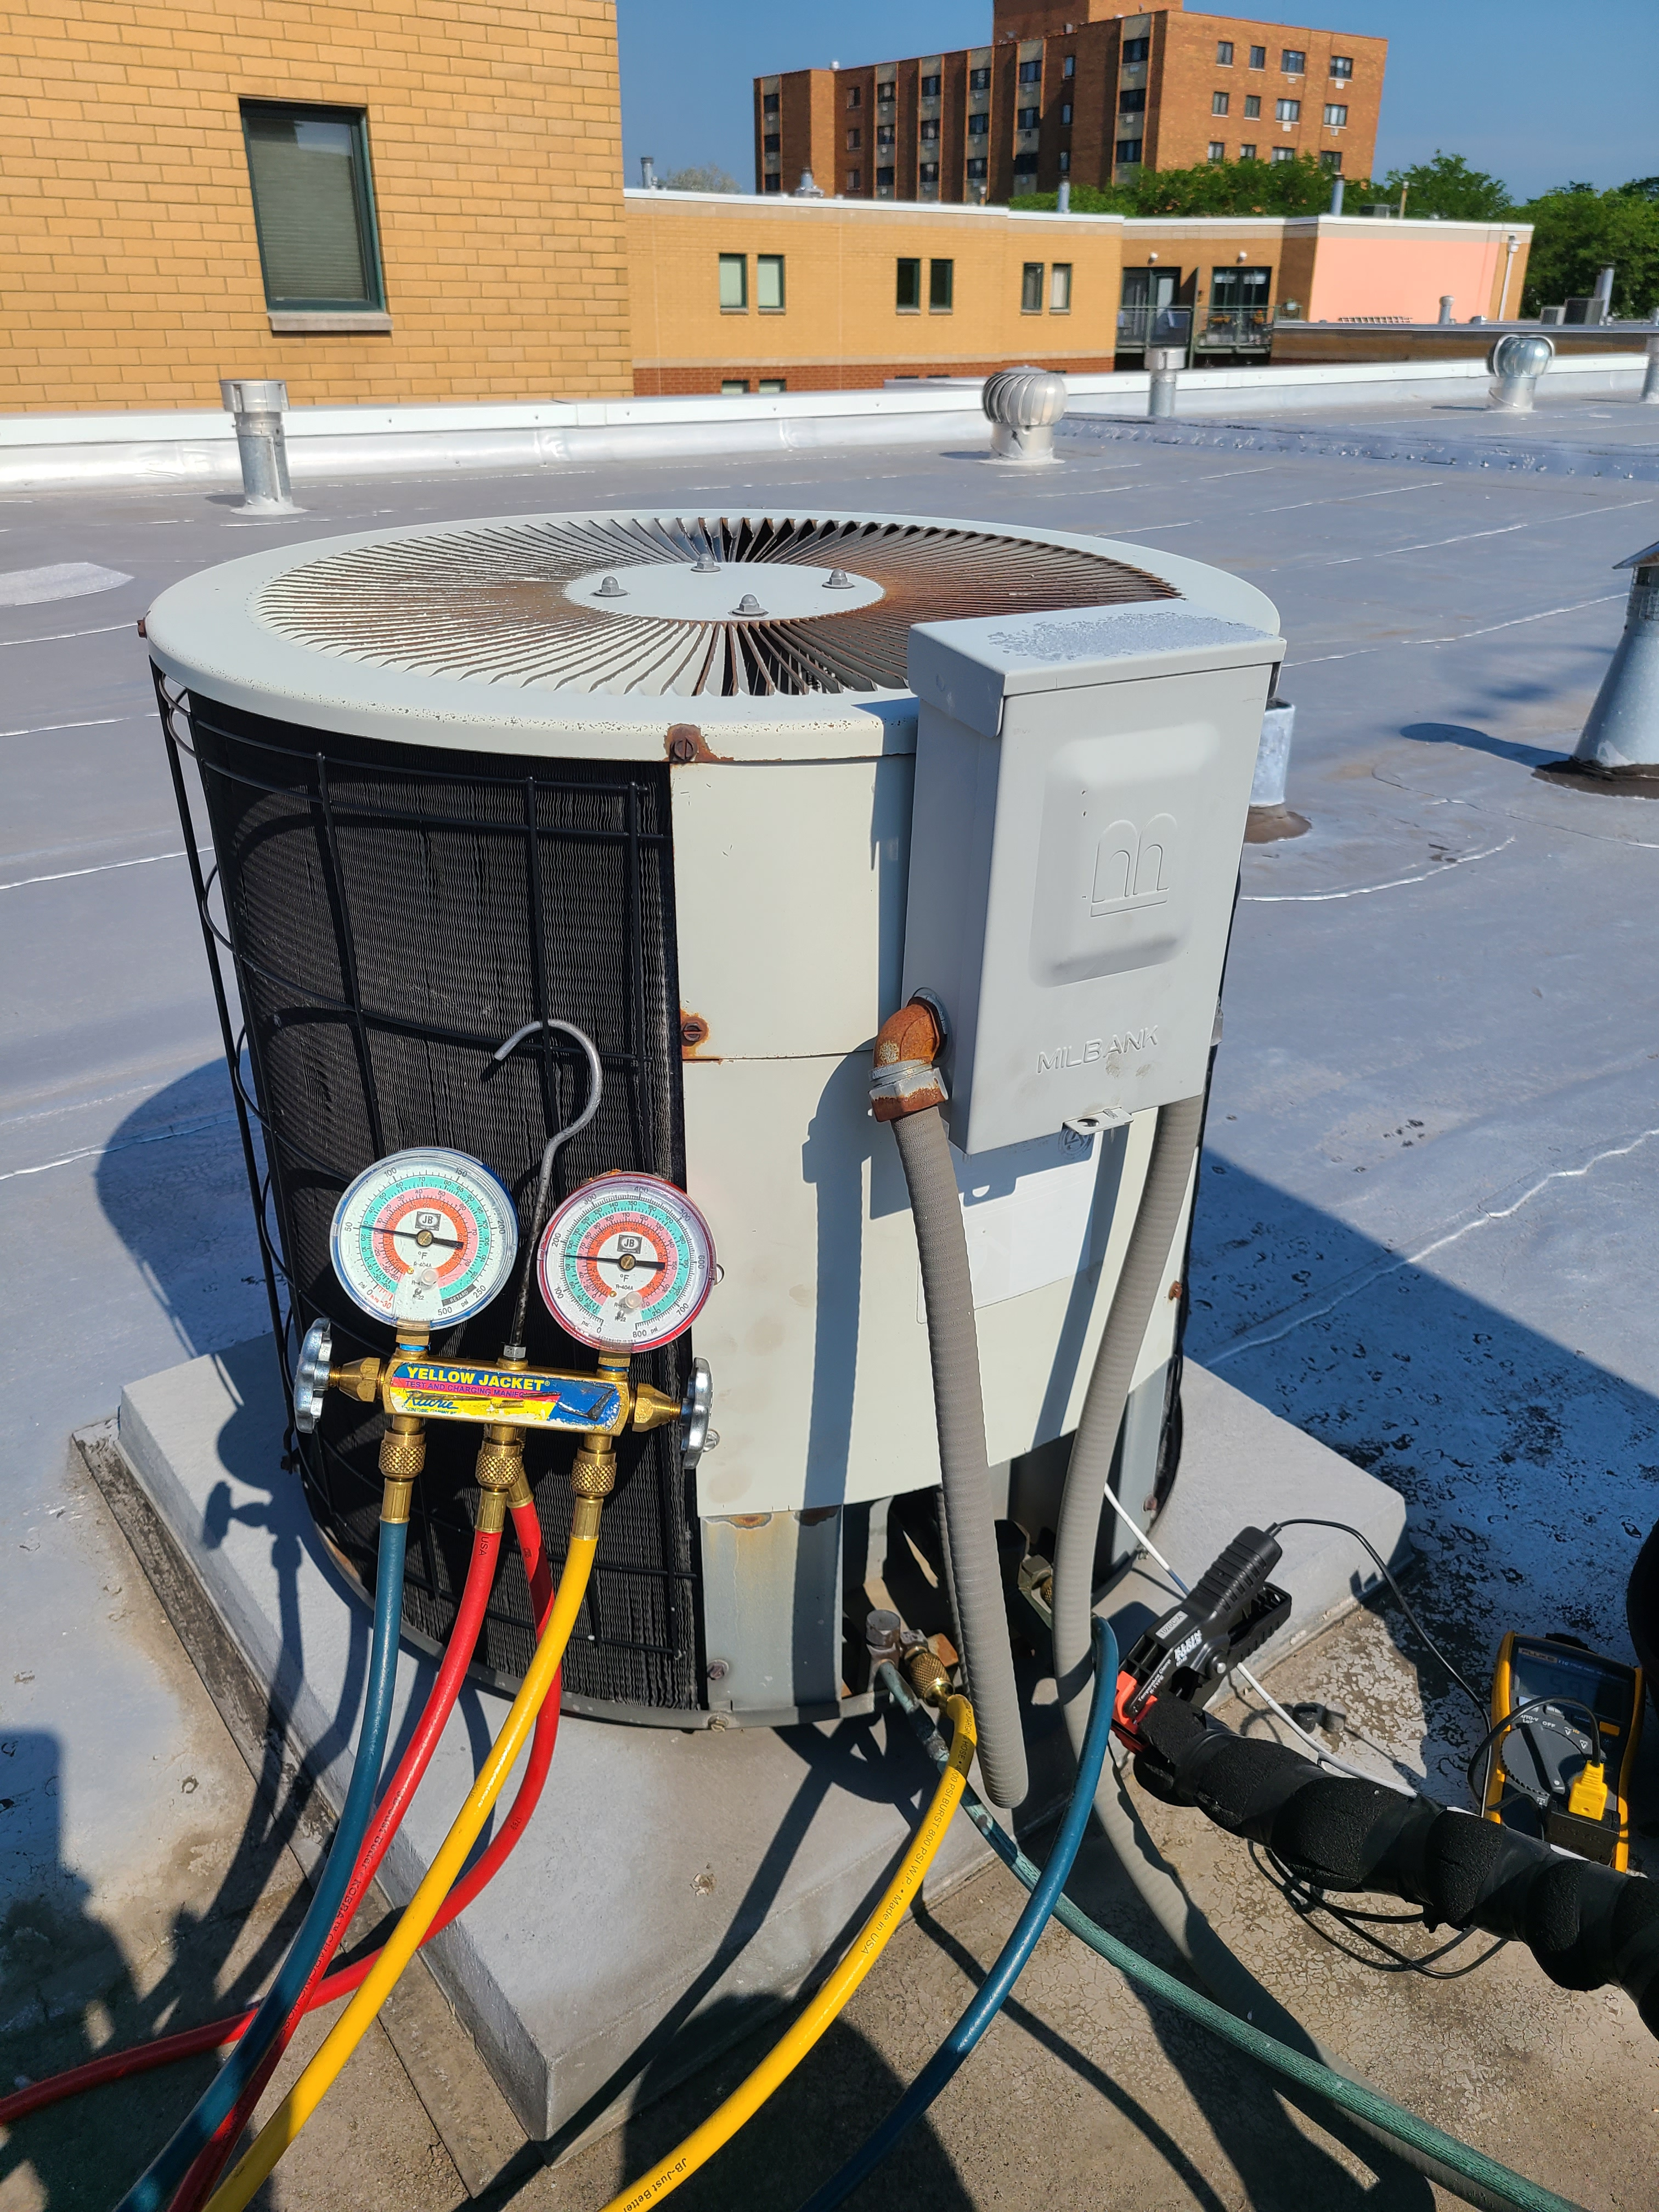 Heil summer ac tune up. System cleaned and checked and ready for summer.